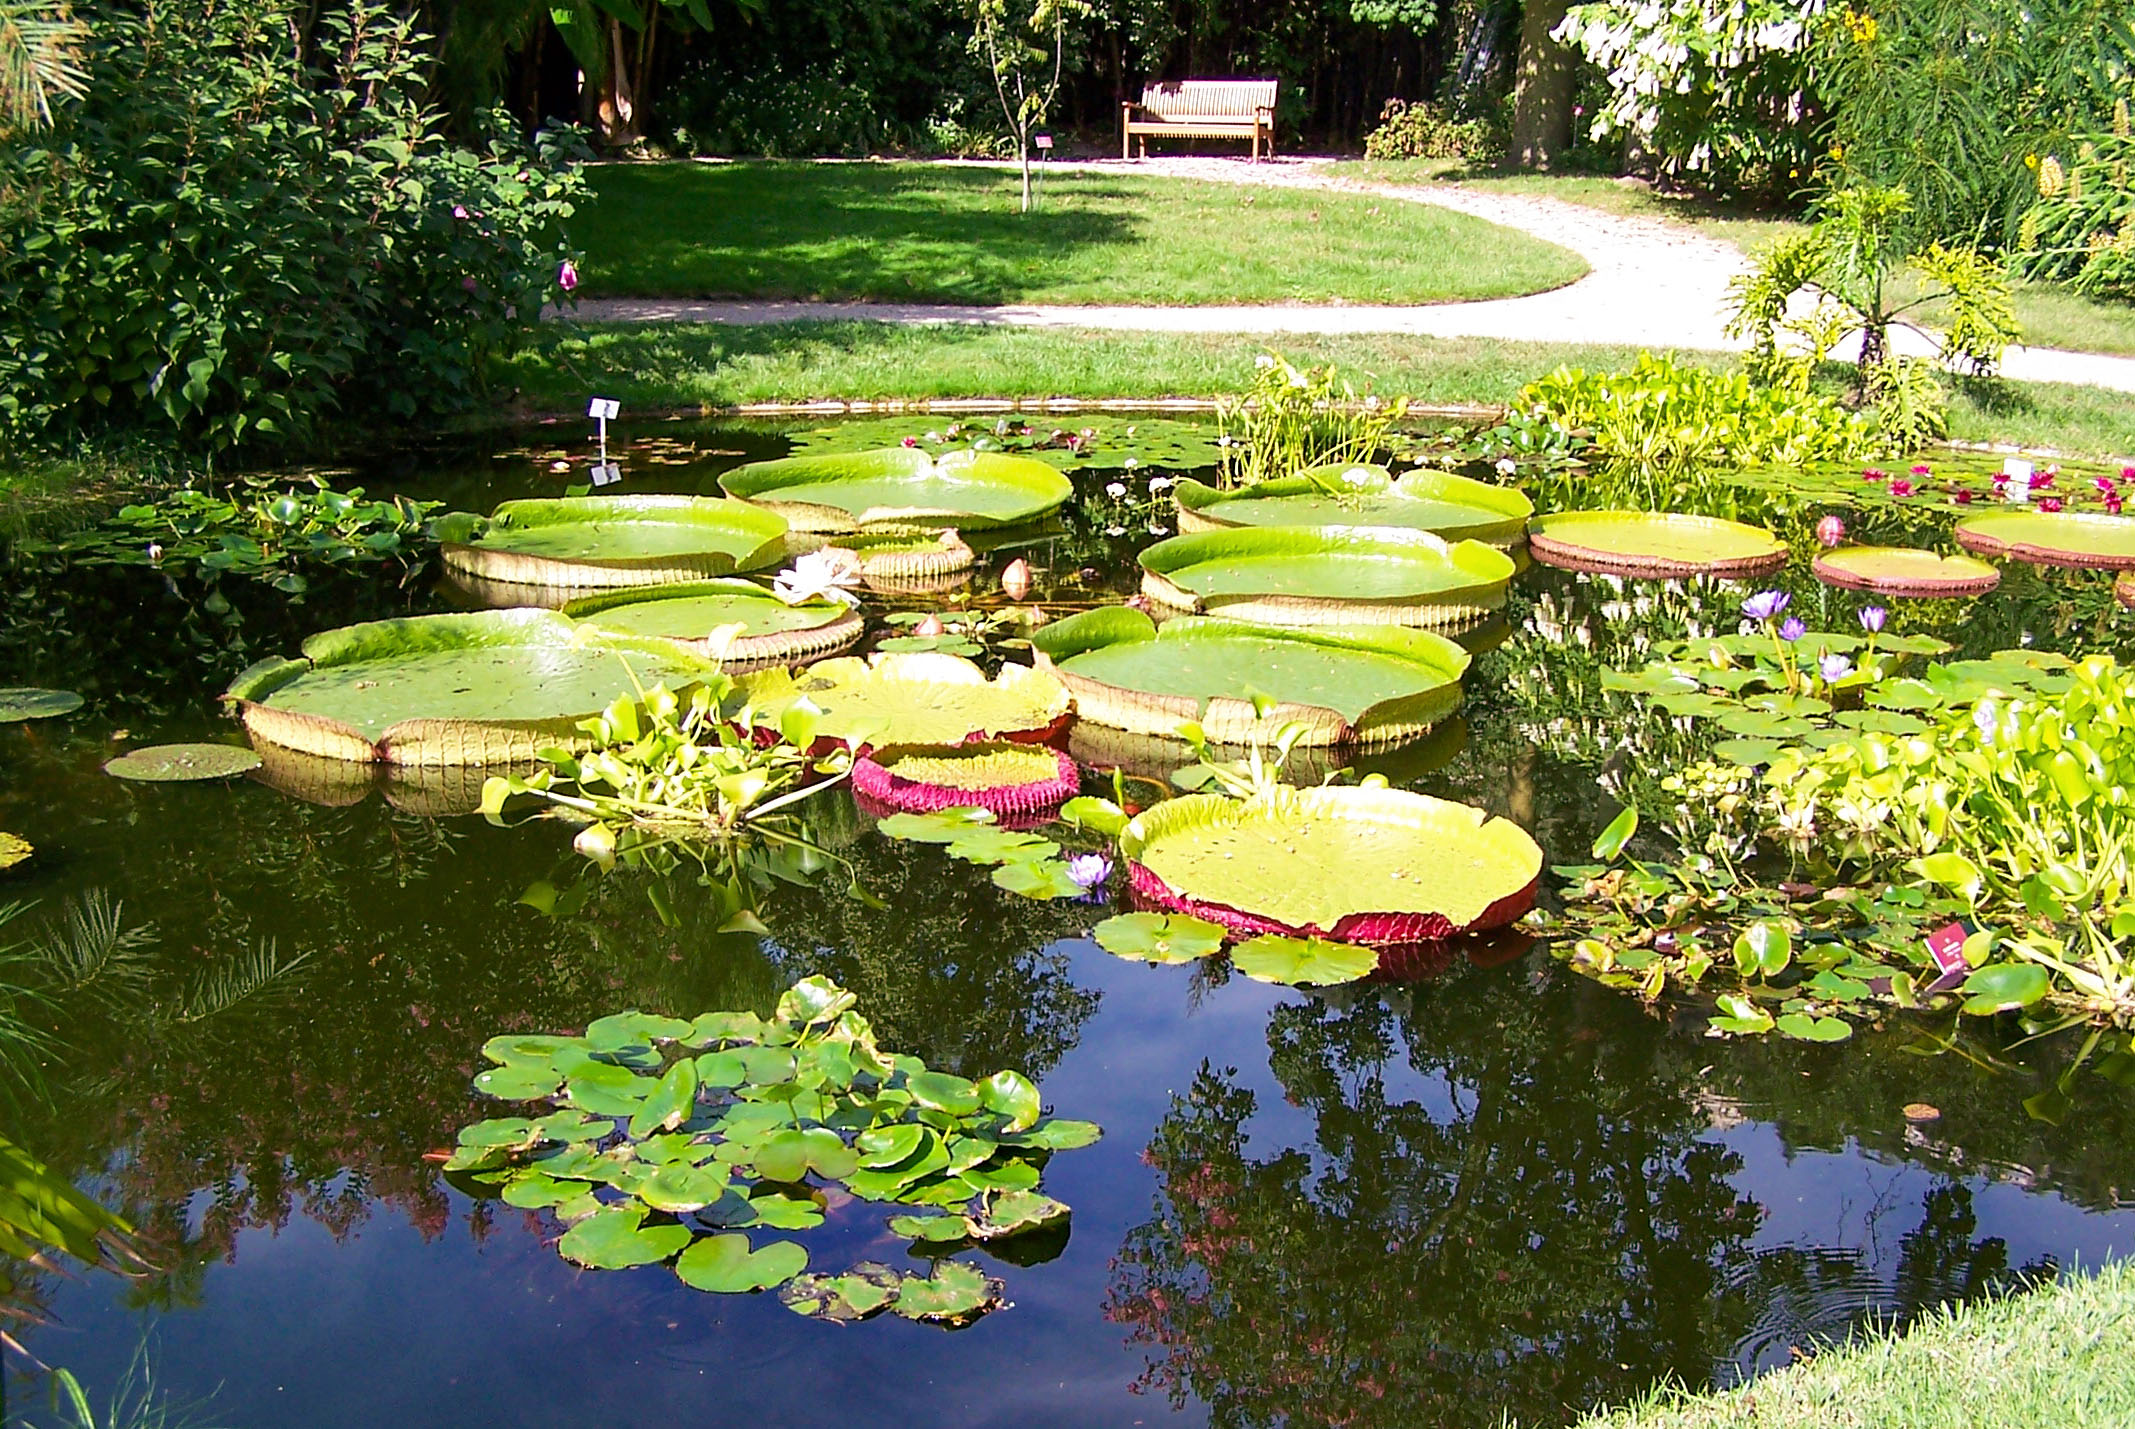 The Victoria amazonica pond, Val Rameh © Berthold Werner - licence [CC BY-SA 3.0] from Wikimedia Commons